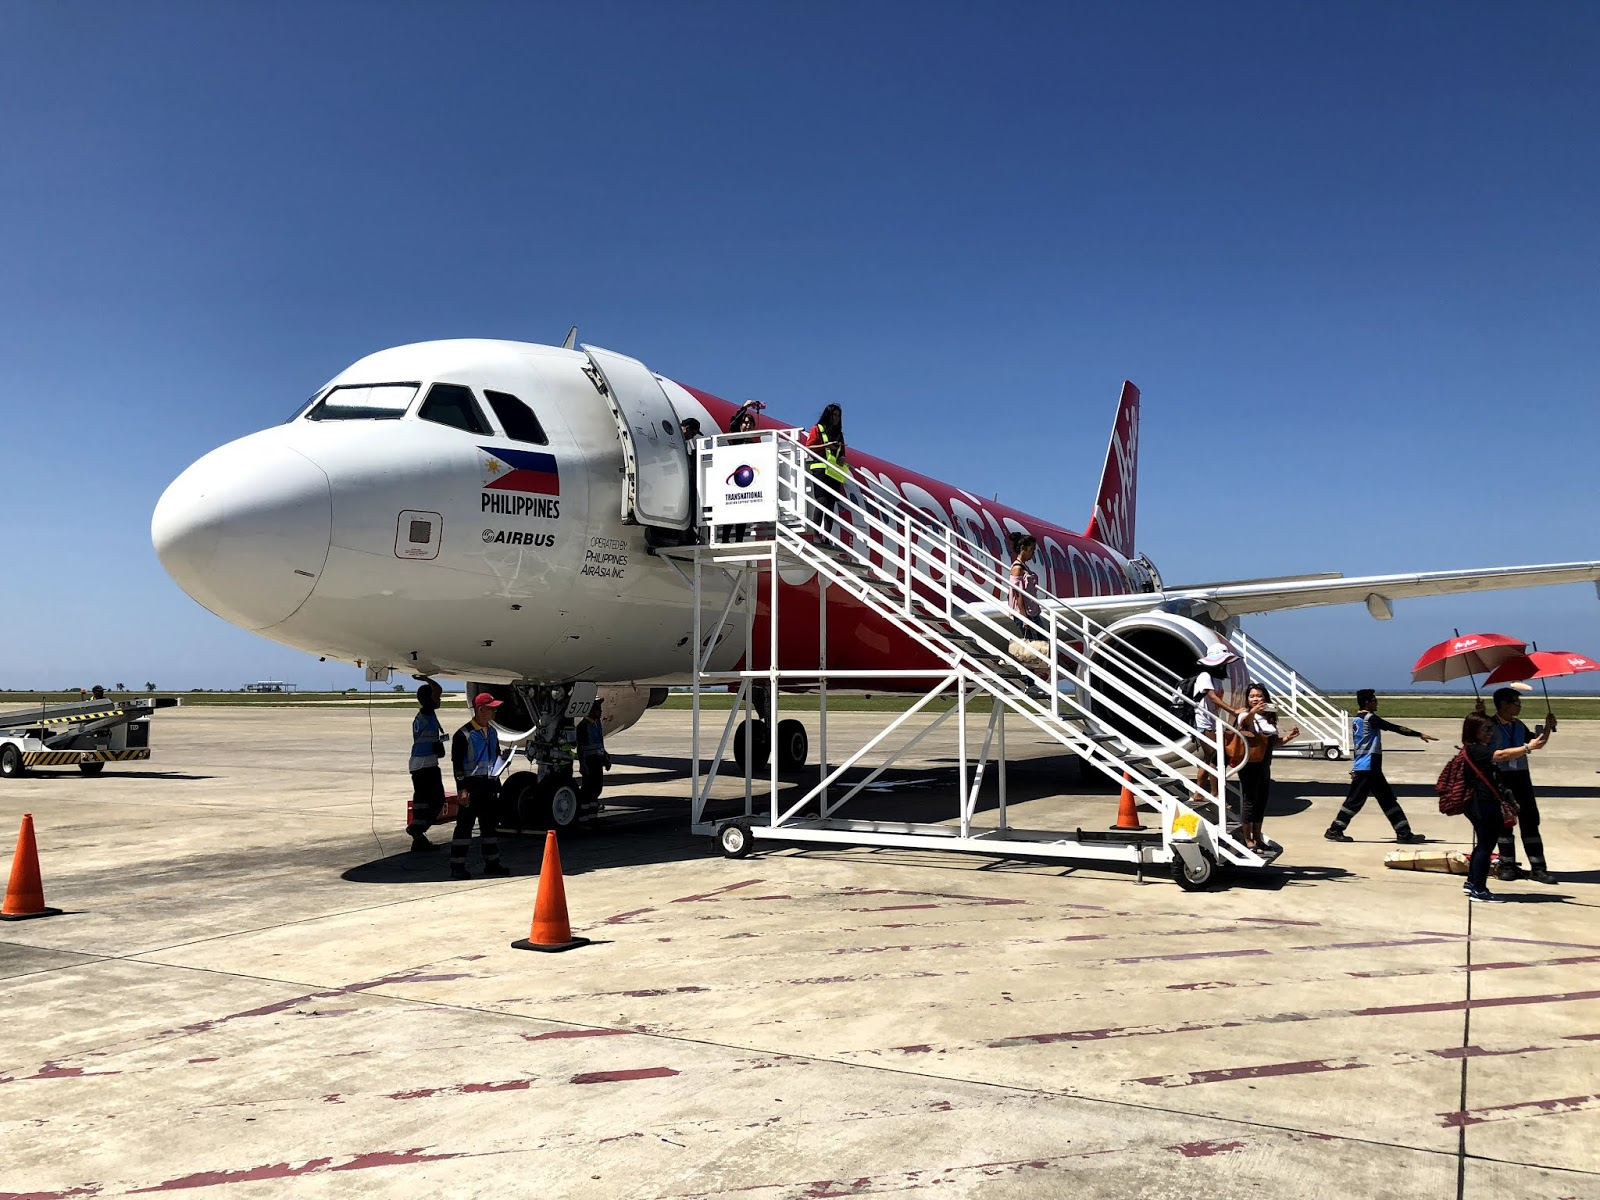 Air Asia Now Flies From CDO to Iloilo City 3 Times a Week